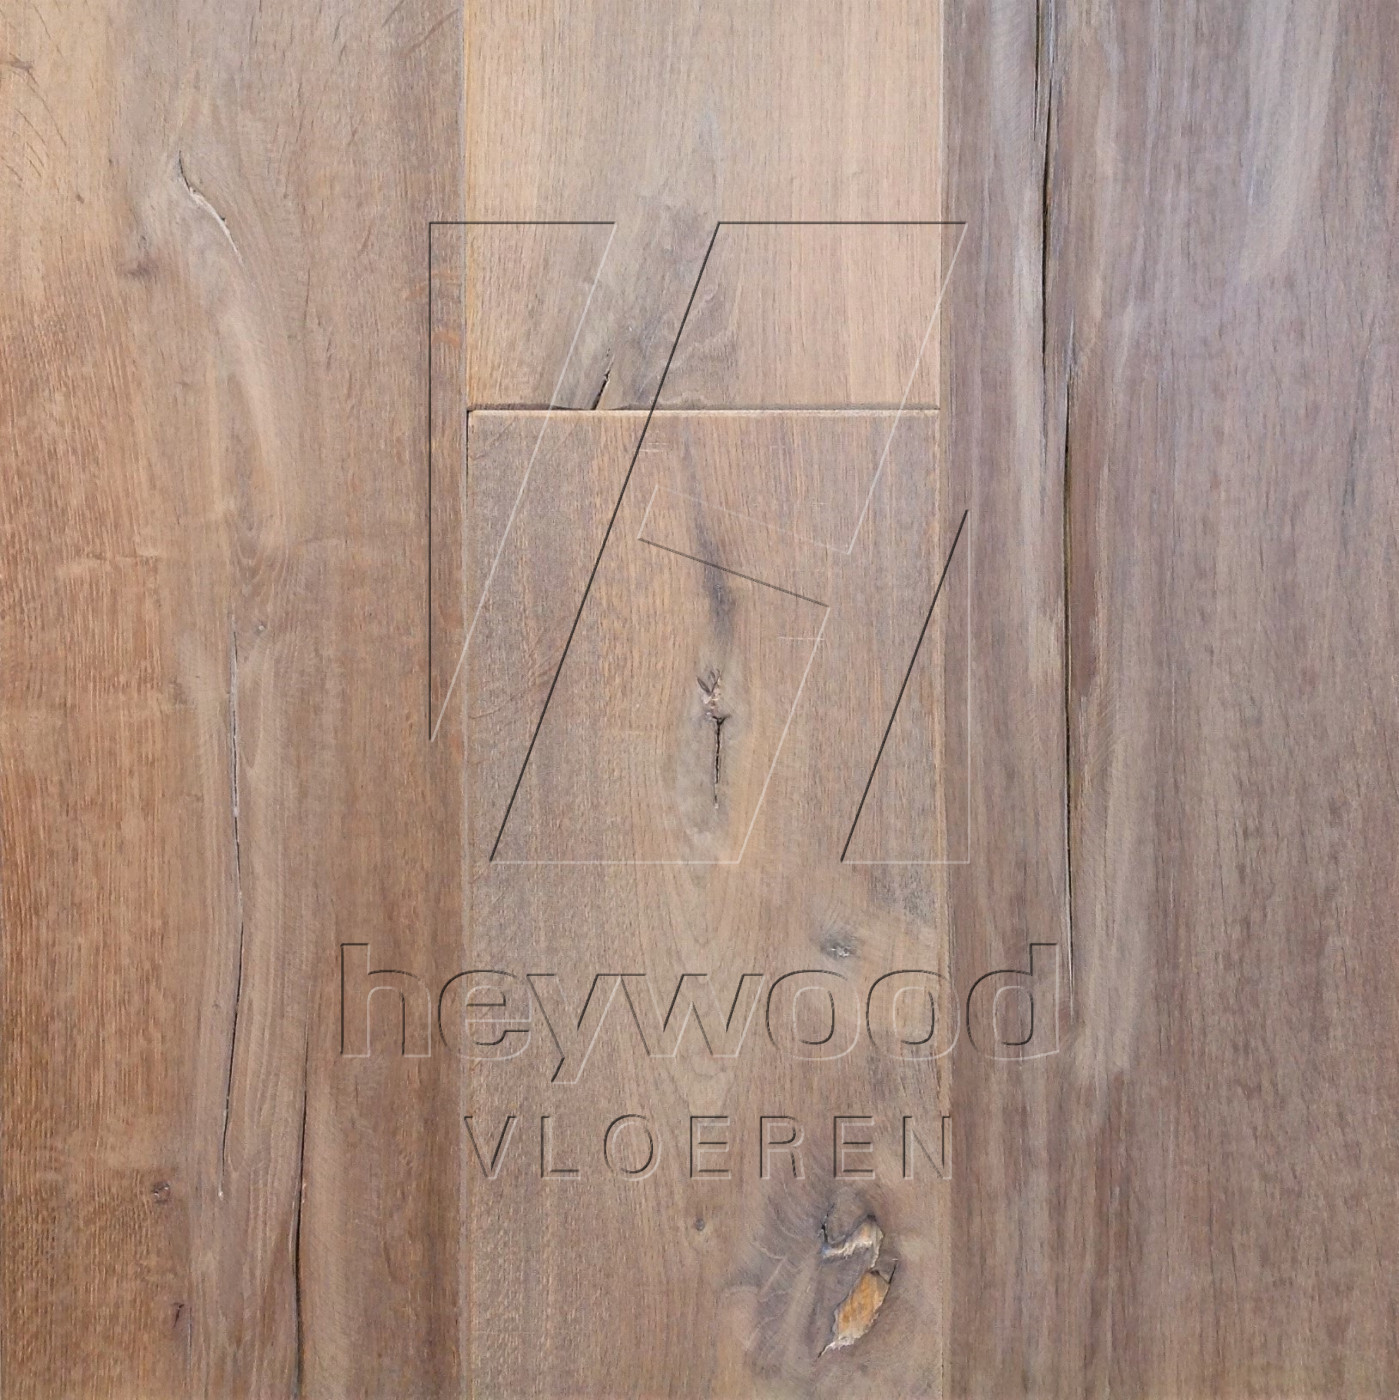 Antique Plank 'McKinley' in Aged Antique Surface of Aged Hardwood Floors